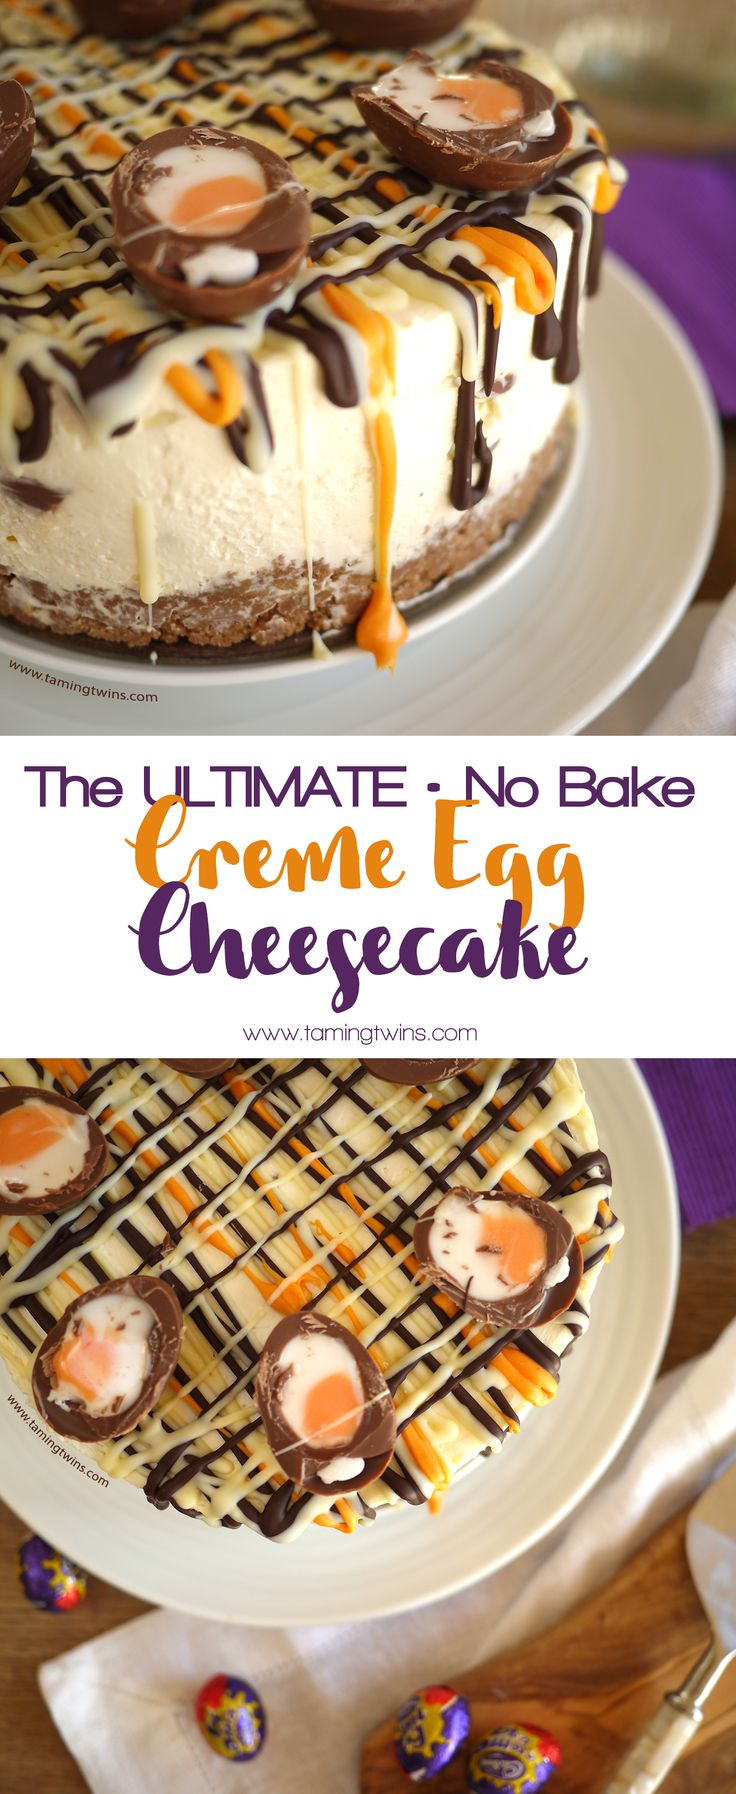 This Cadburys Creme Egg Cheesecake Recipe (No Bake!) has been viewed over a million times. The ultimate Easter chocolate make,